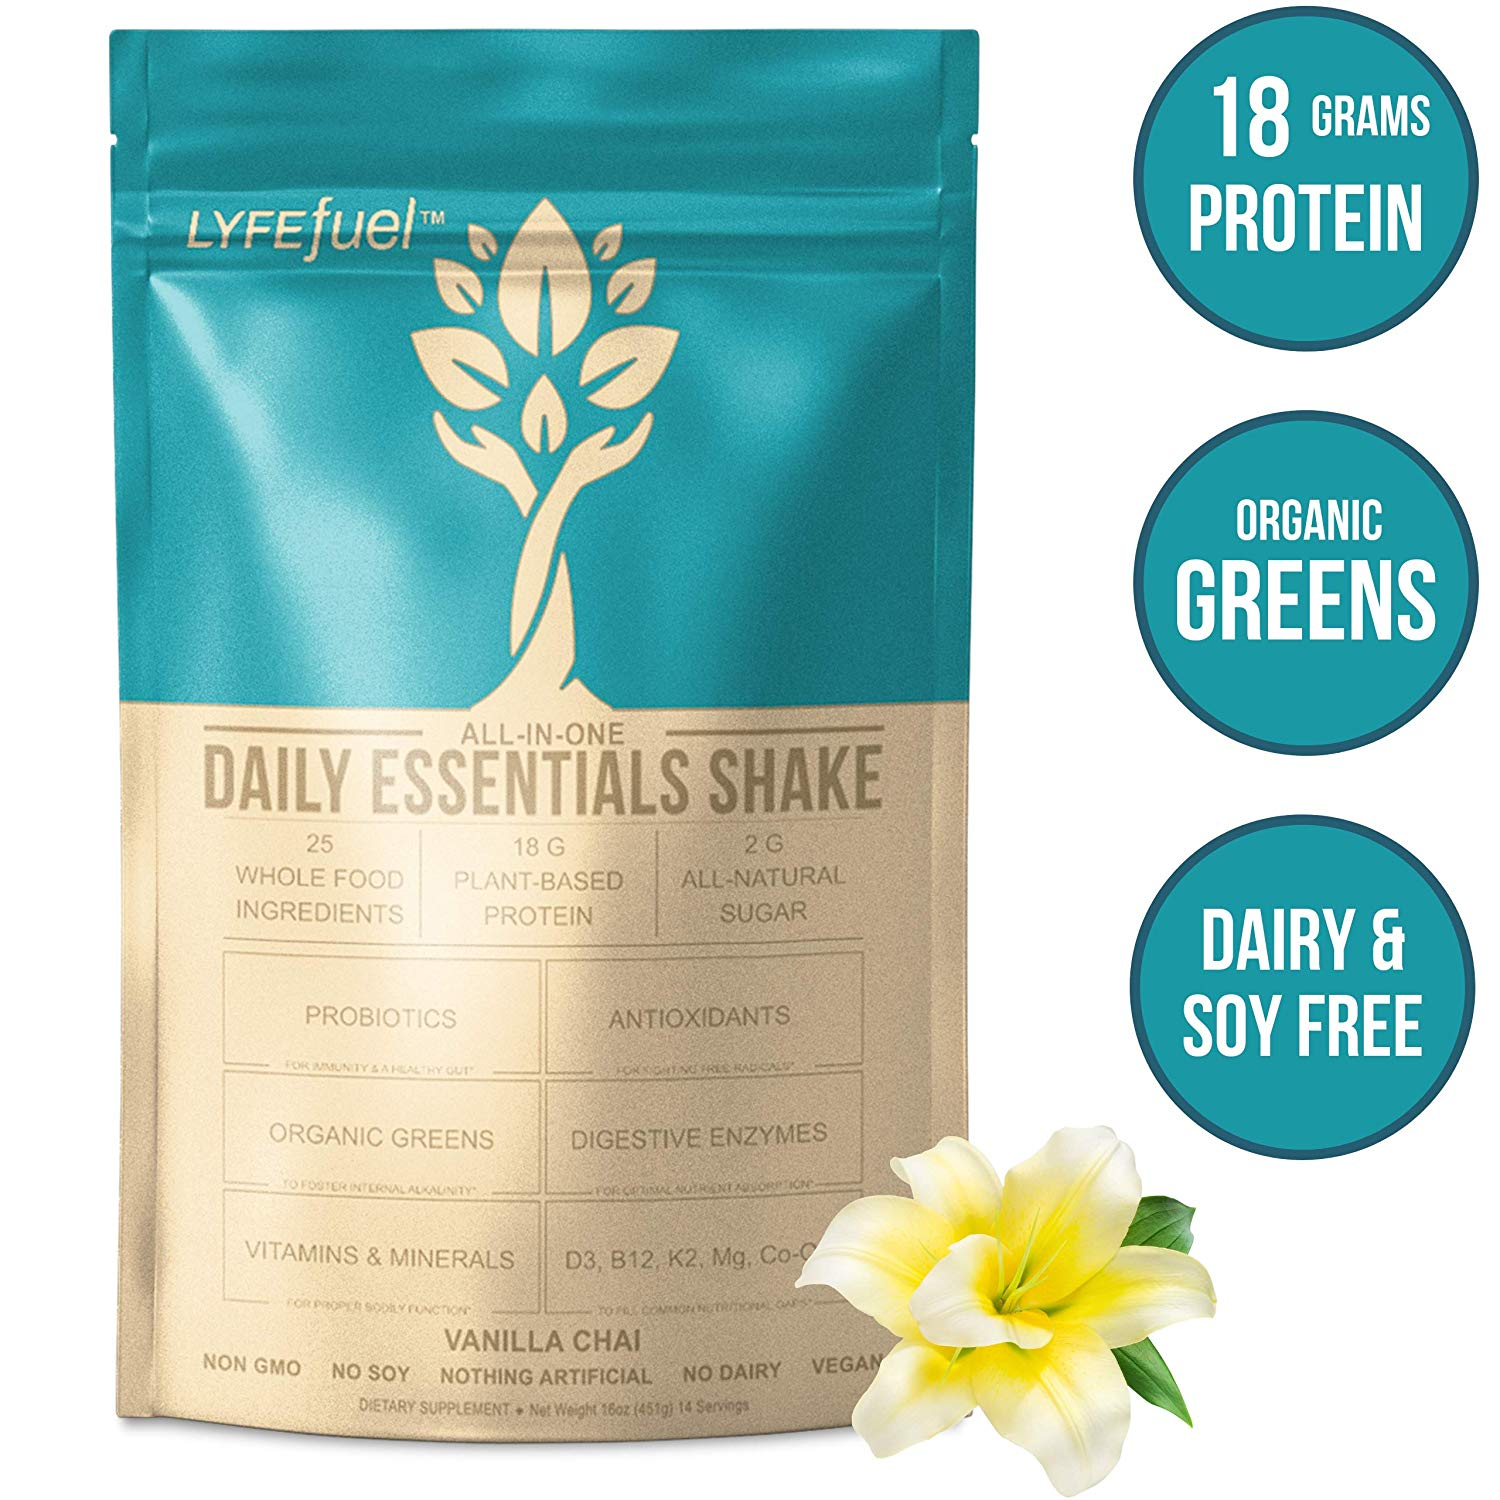 LyfeFuel Meal Replacement Shake